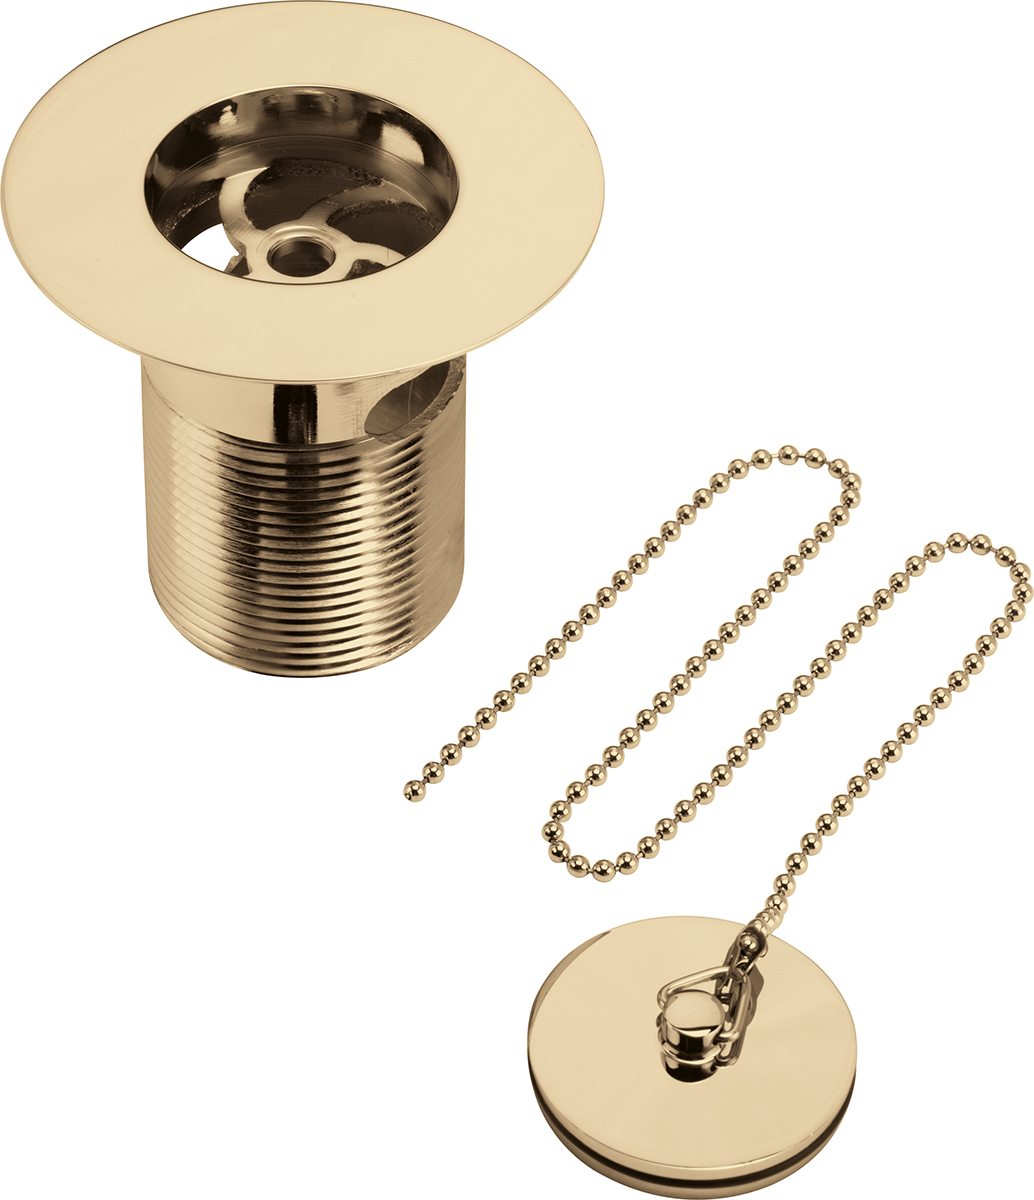 Luxury Sink Waste with Solid Brass Plug - Gold